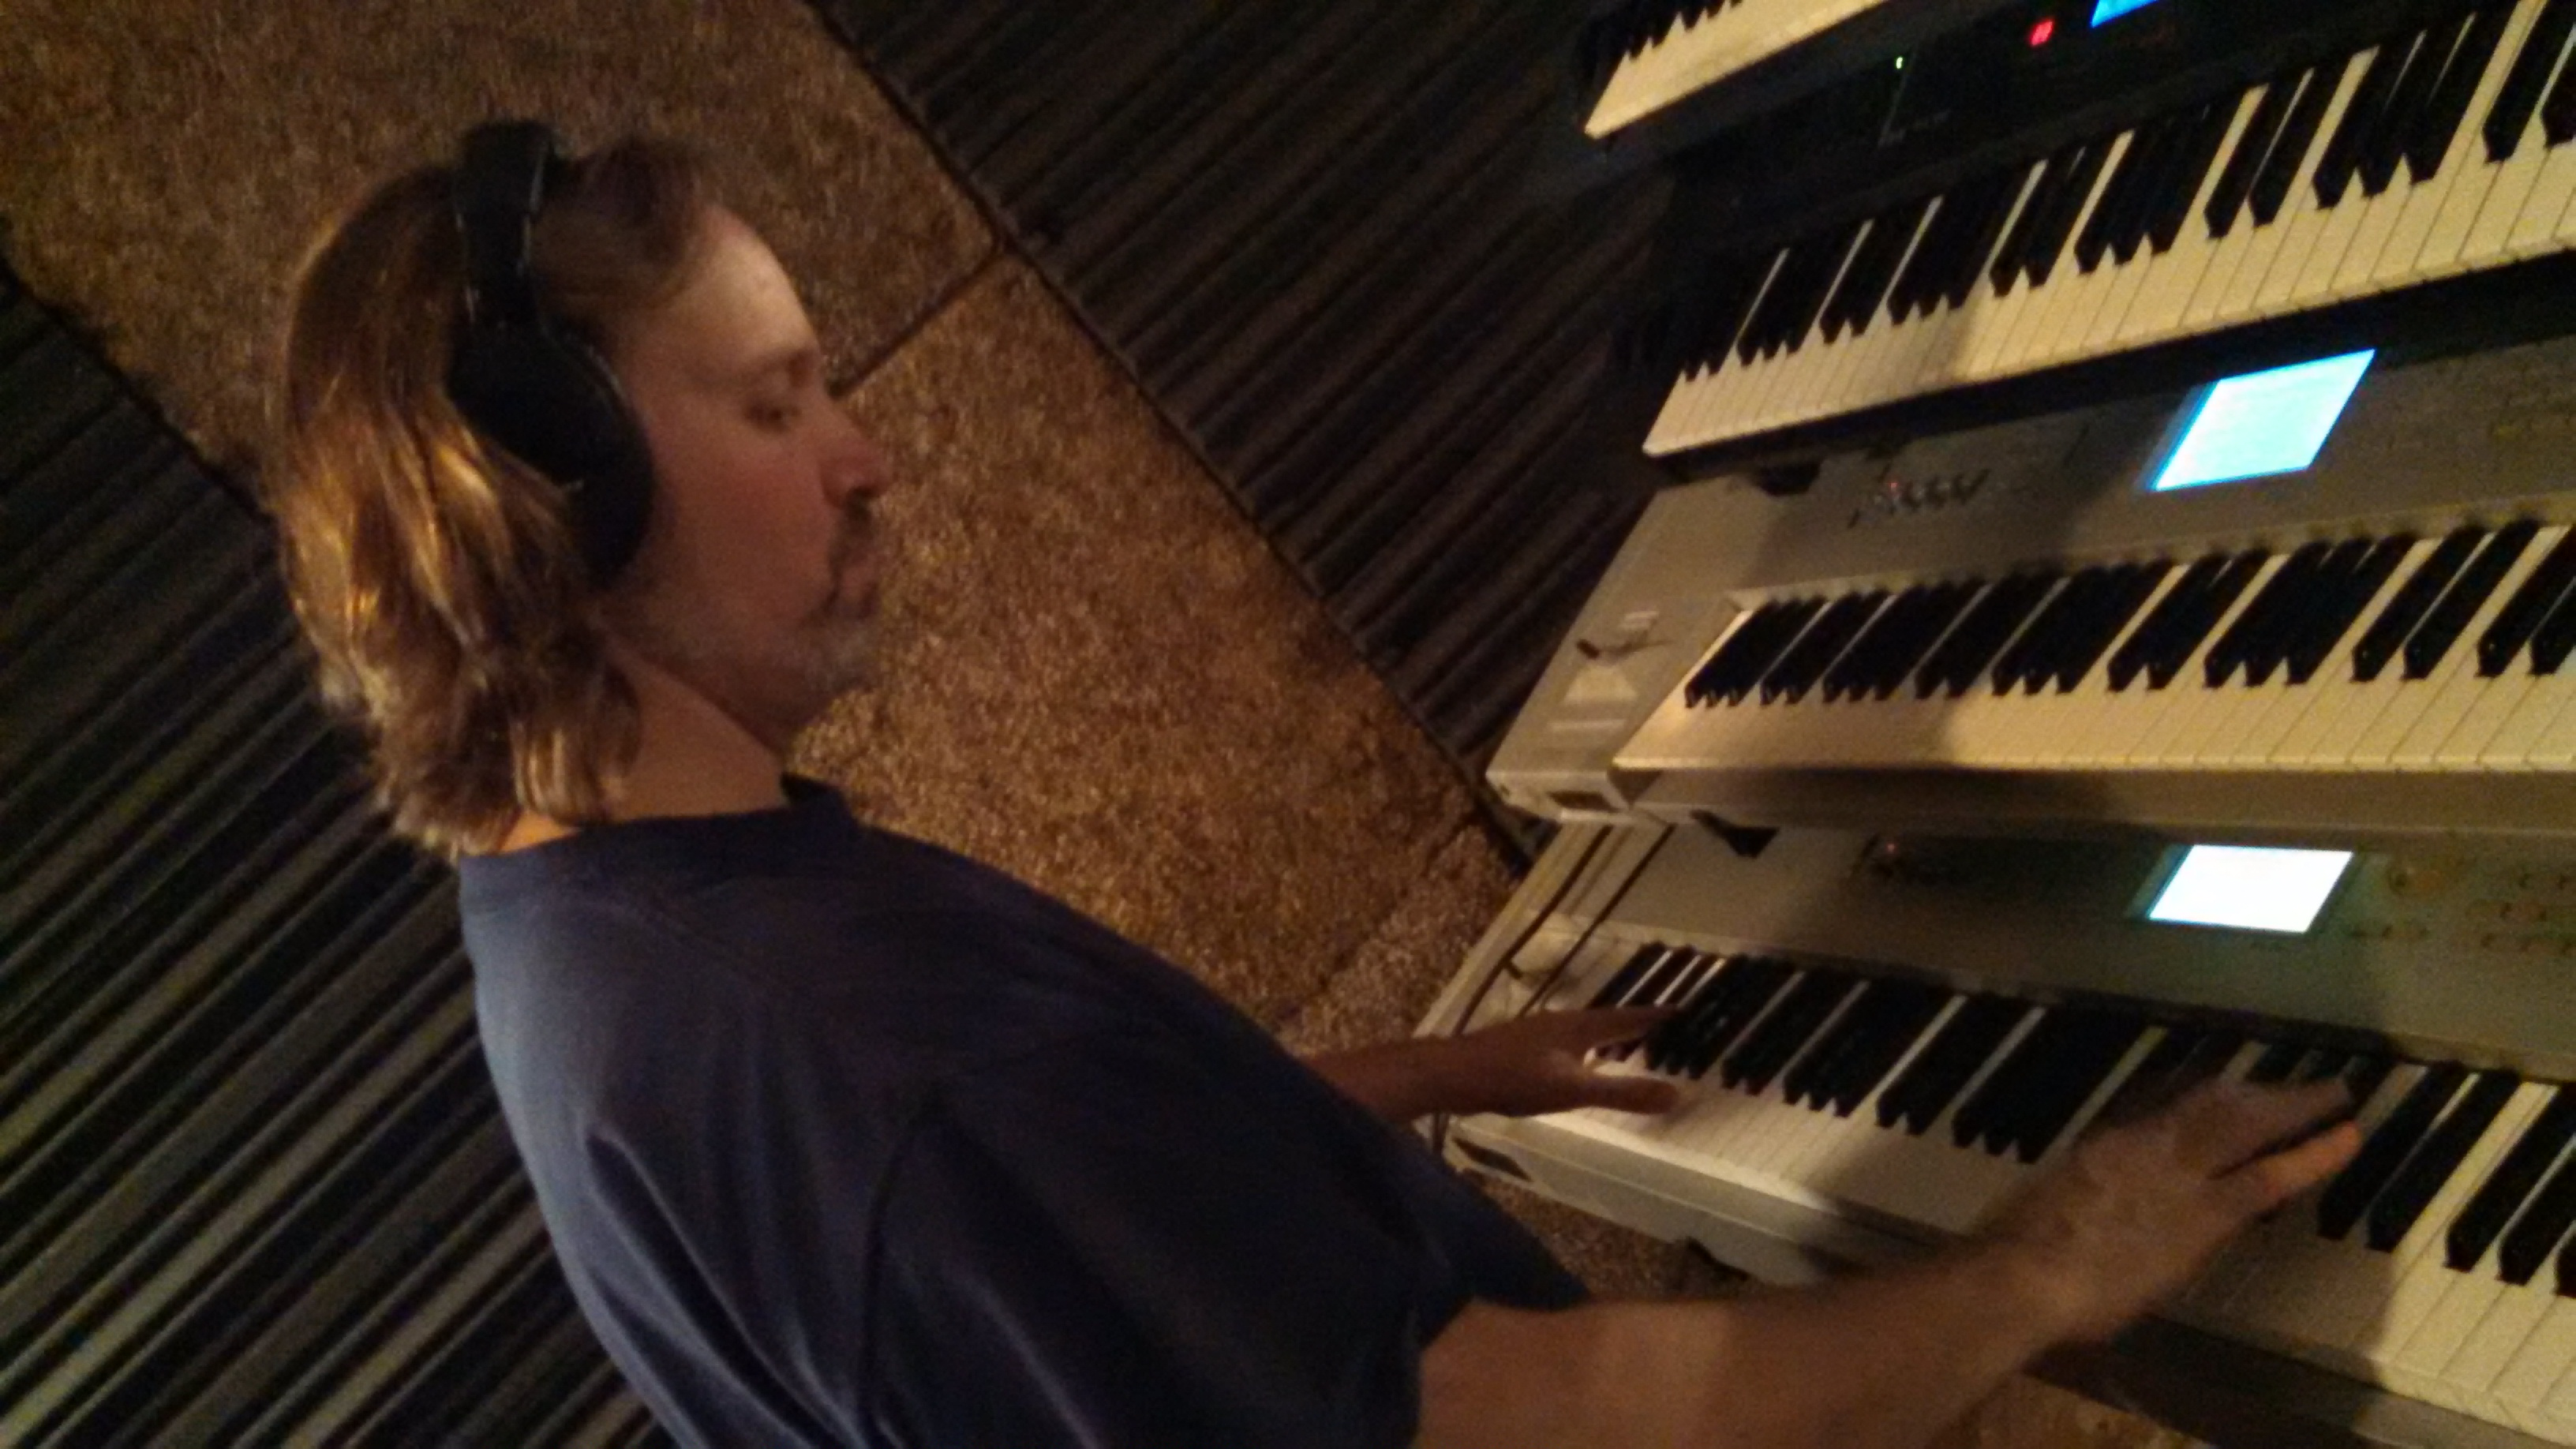 Andrew Colyer writing original modern progressive rock music with Circuline